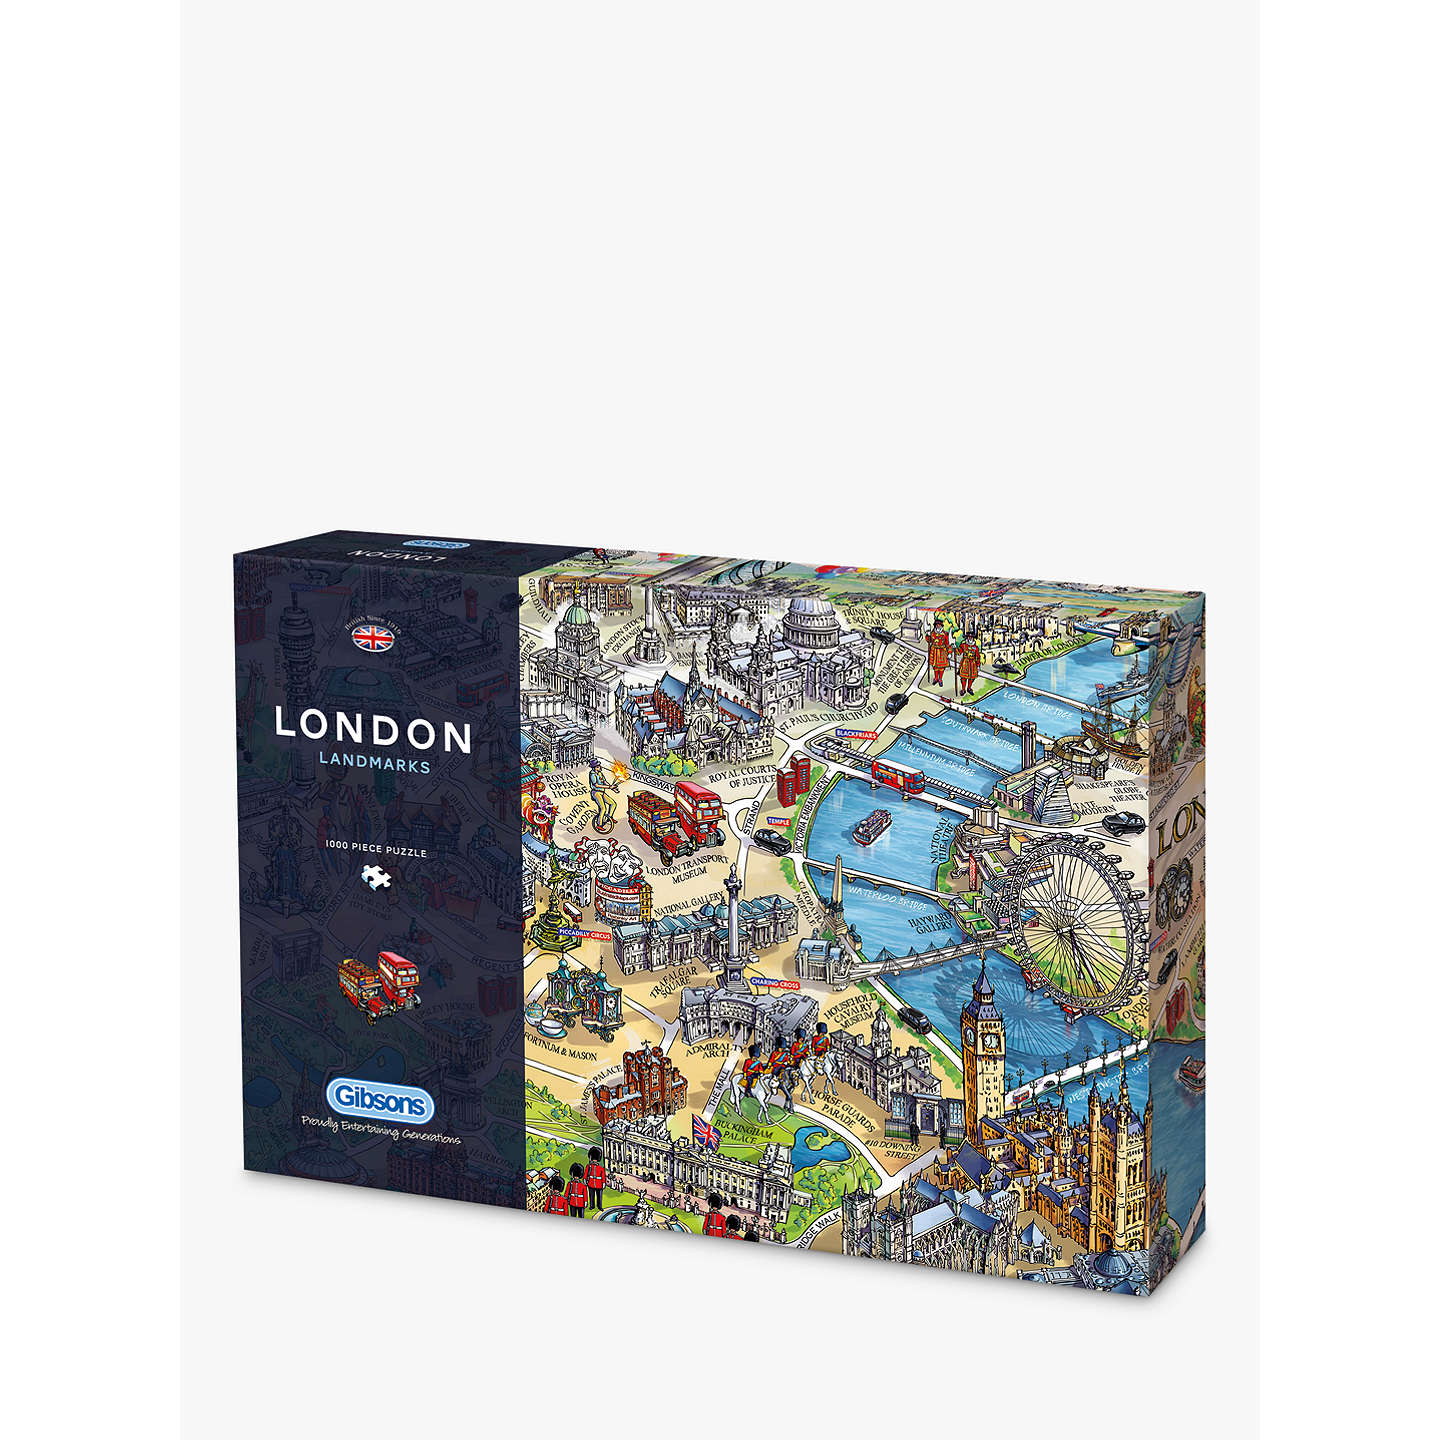 Gibsons london landmarks jigsaw puzzle 1000 pieces at john lewis buygibsons london landmarks jigsaw puzzle 1000 pieces online at johnlewis gumiabroncs Image collections